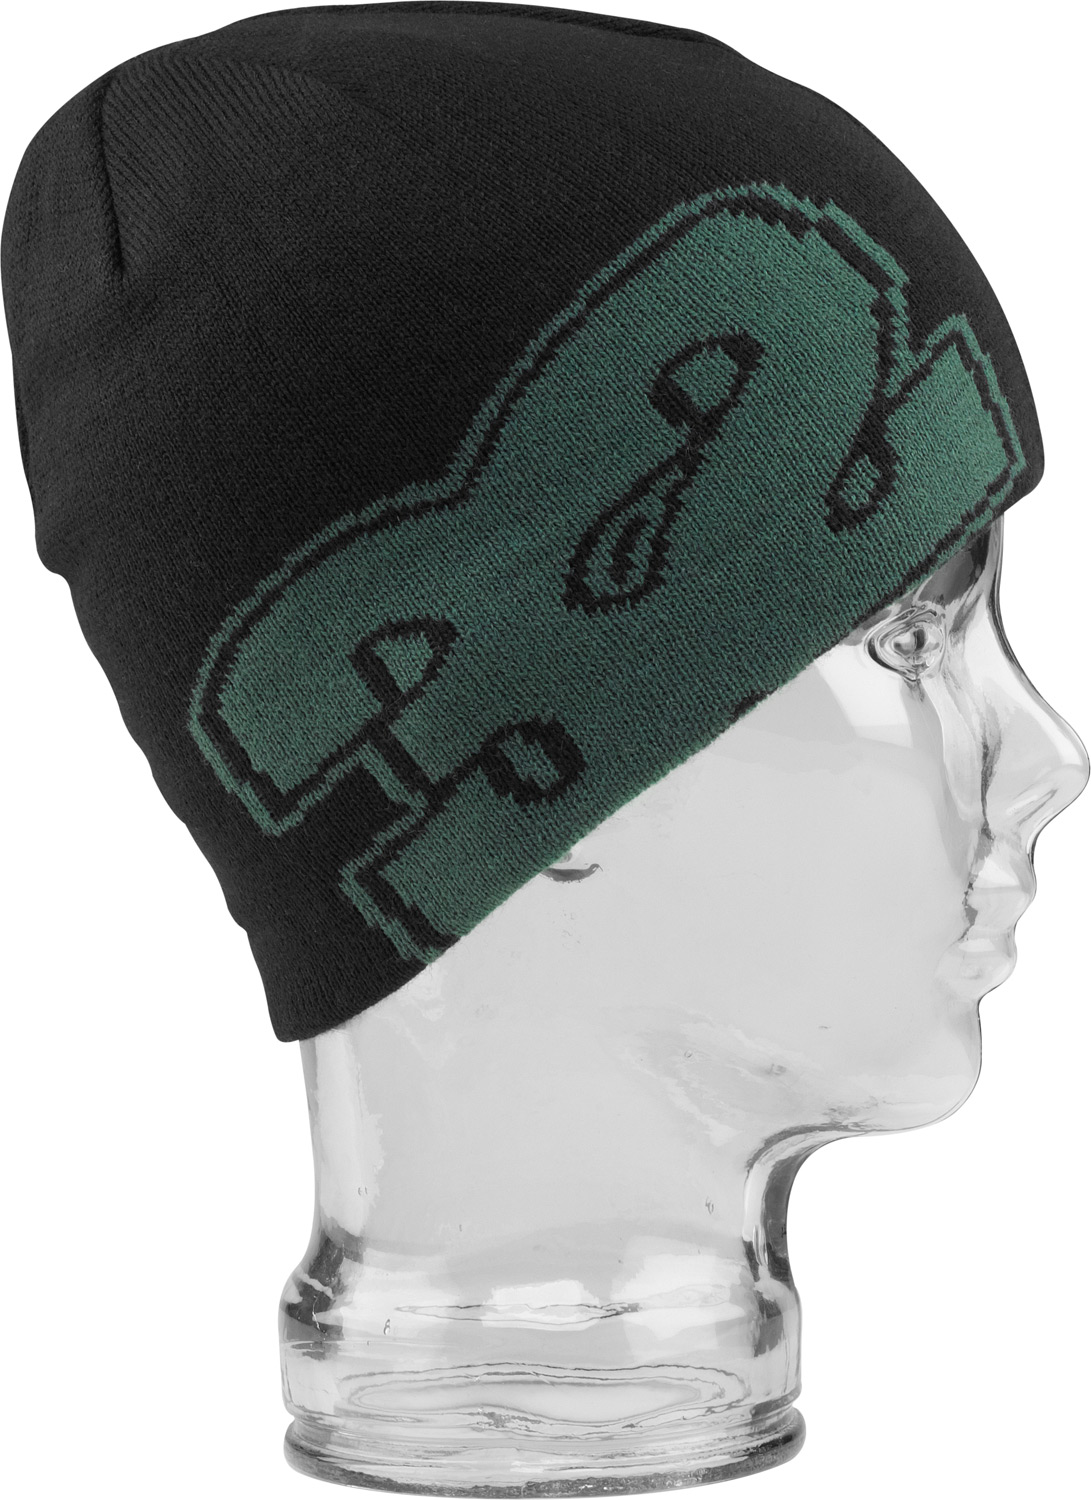 Key Features of the 32 - Thirty Two Brose 2 Beanie: 100% acrylic reversible beanie with jacquard logos - $11.95